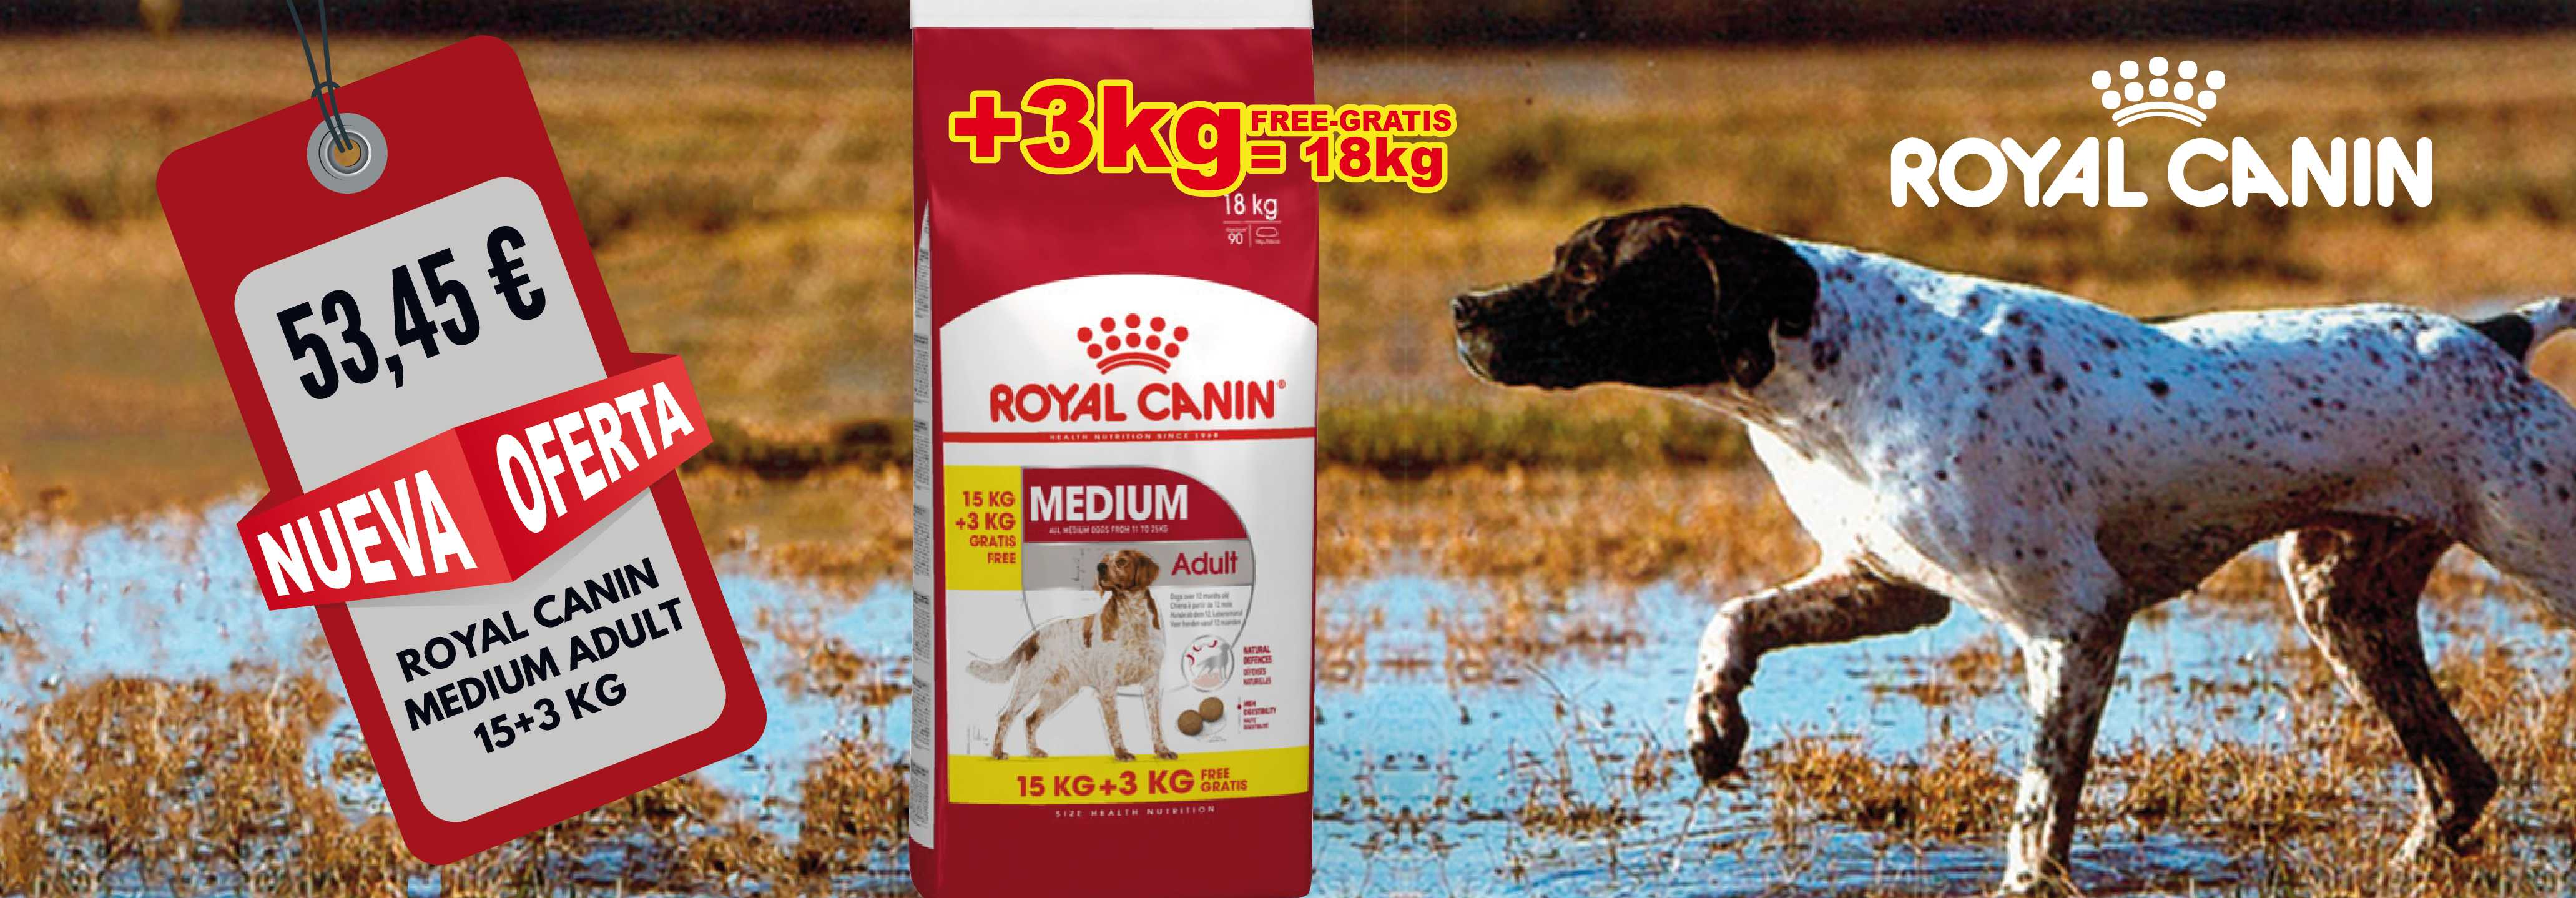 MEDIUM ADULTO 15+3 KG ROYAL CANIN